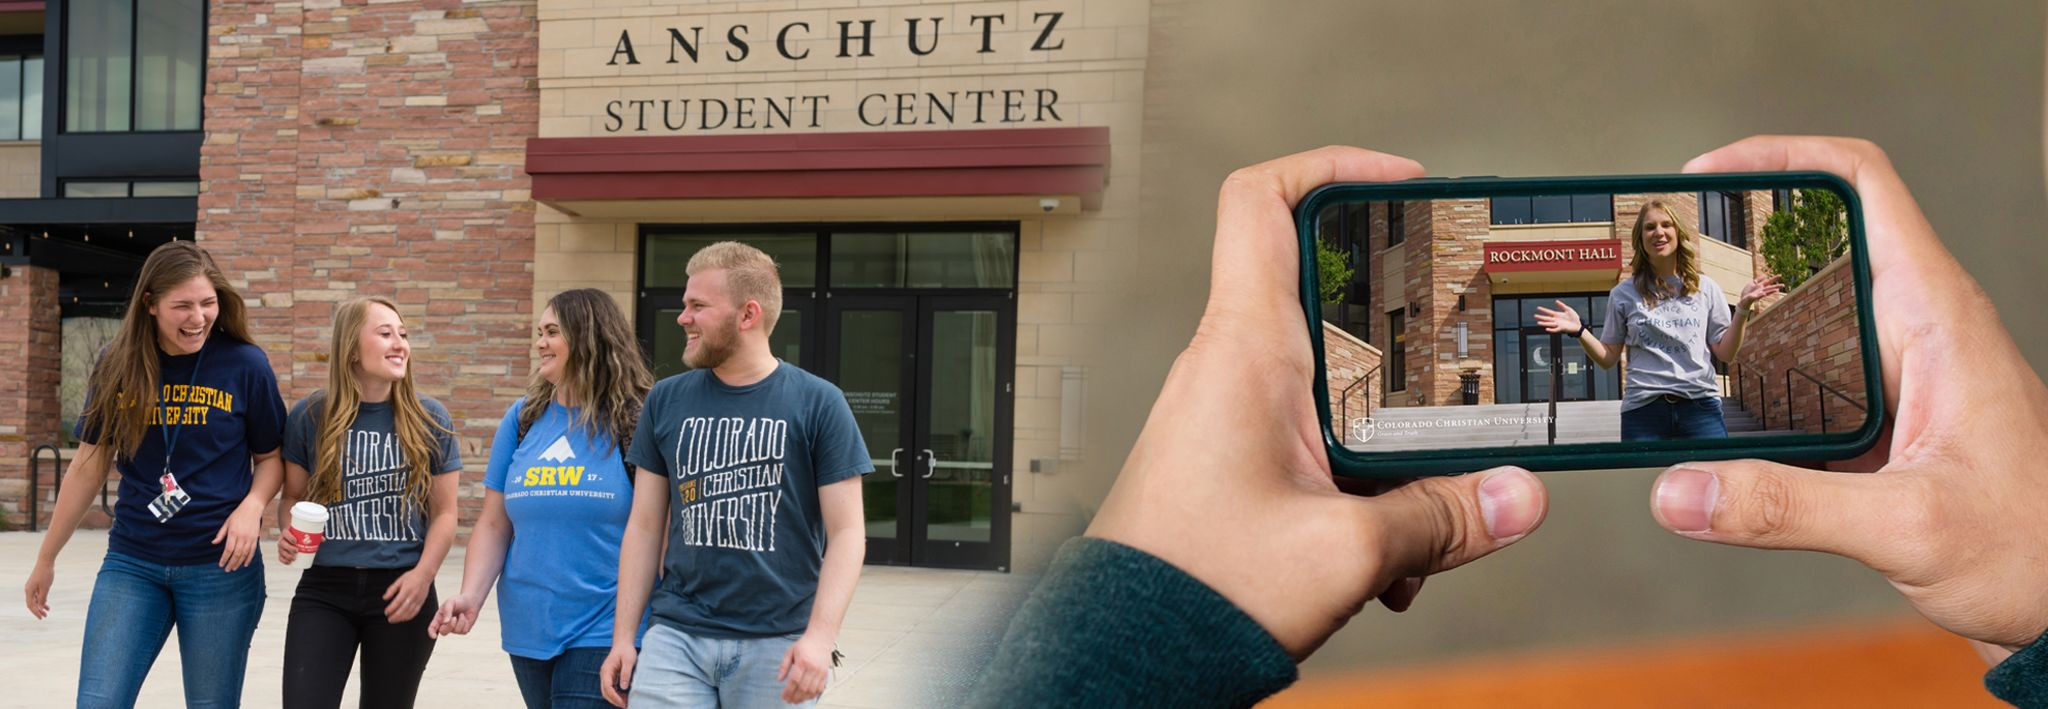 During the 2020 pandemic CCU offers both in person and virtual visits for prospective students.